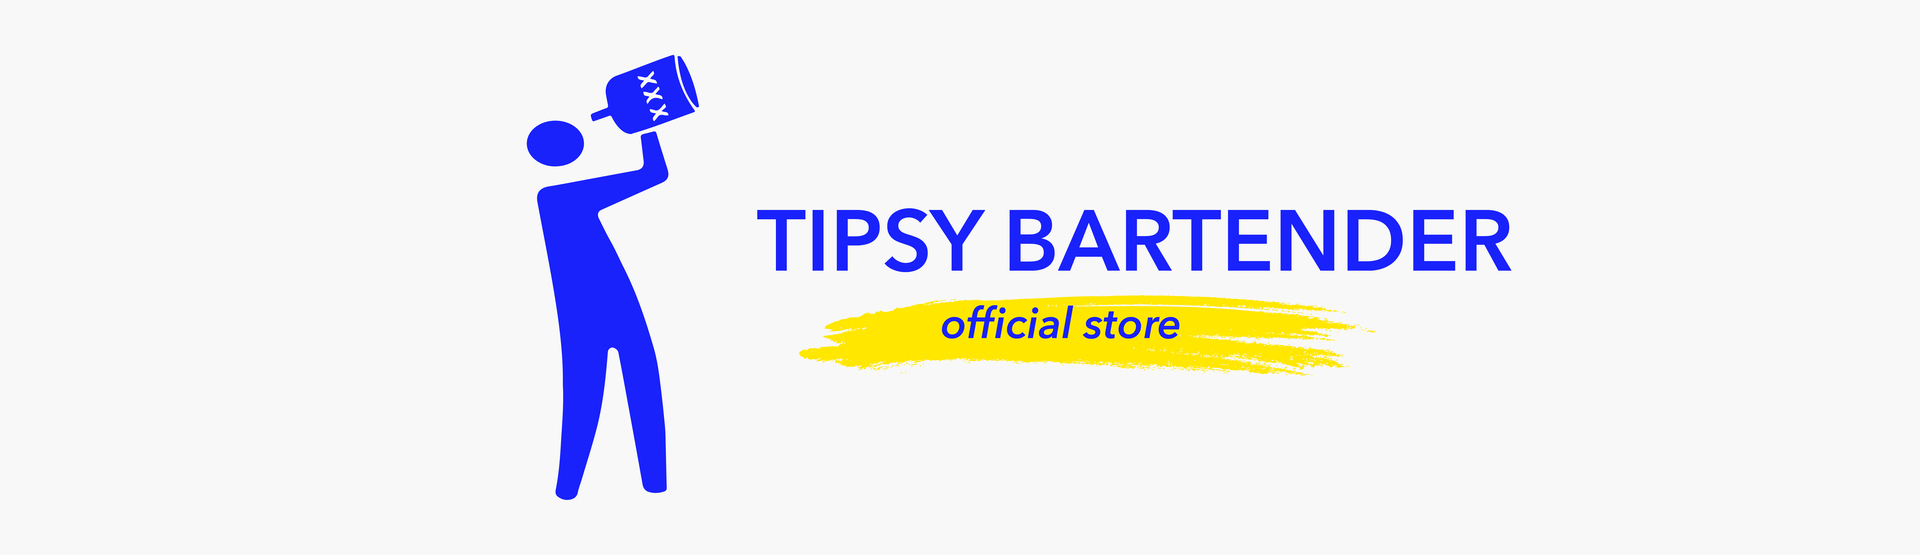 Official Tipsy Bartender Store Store